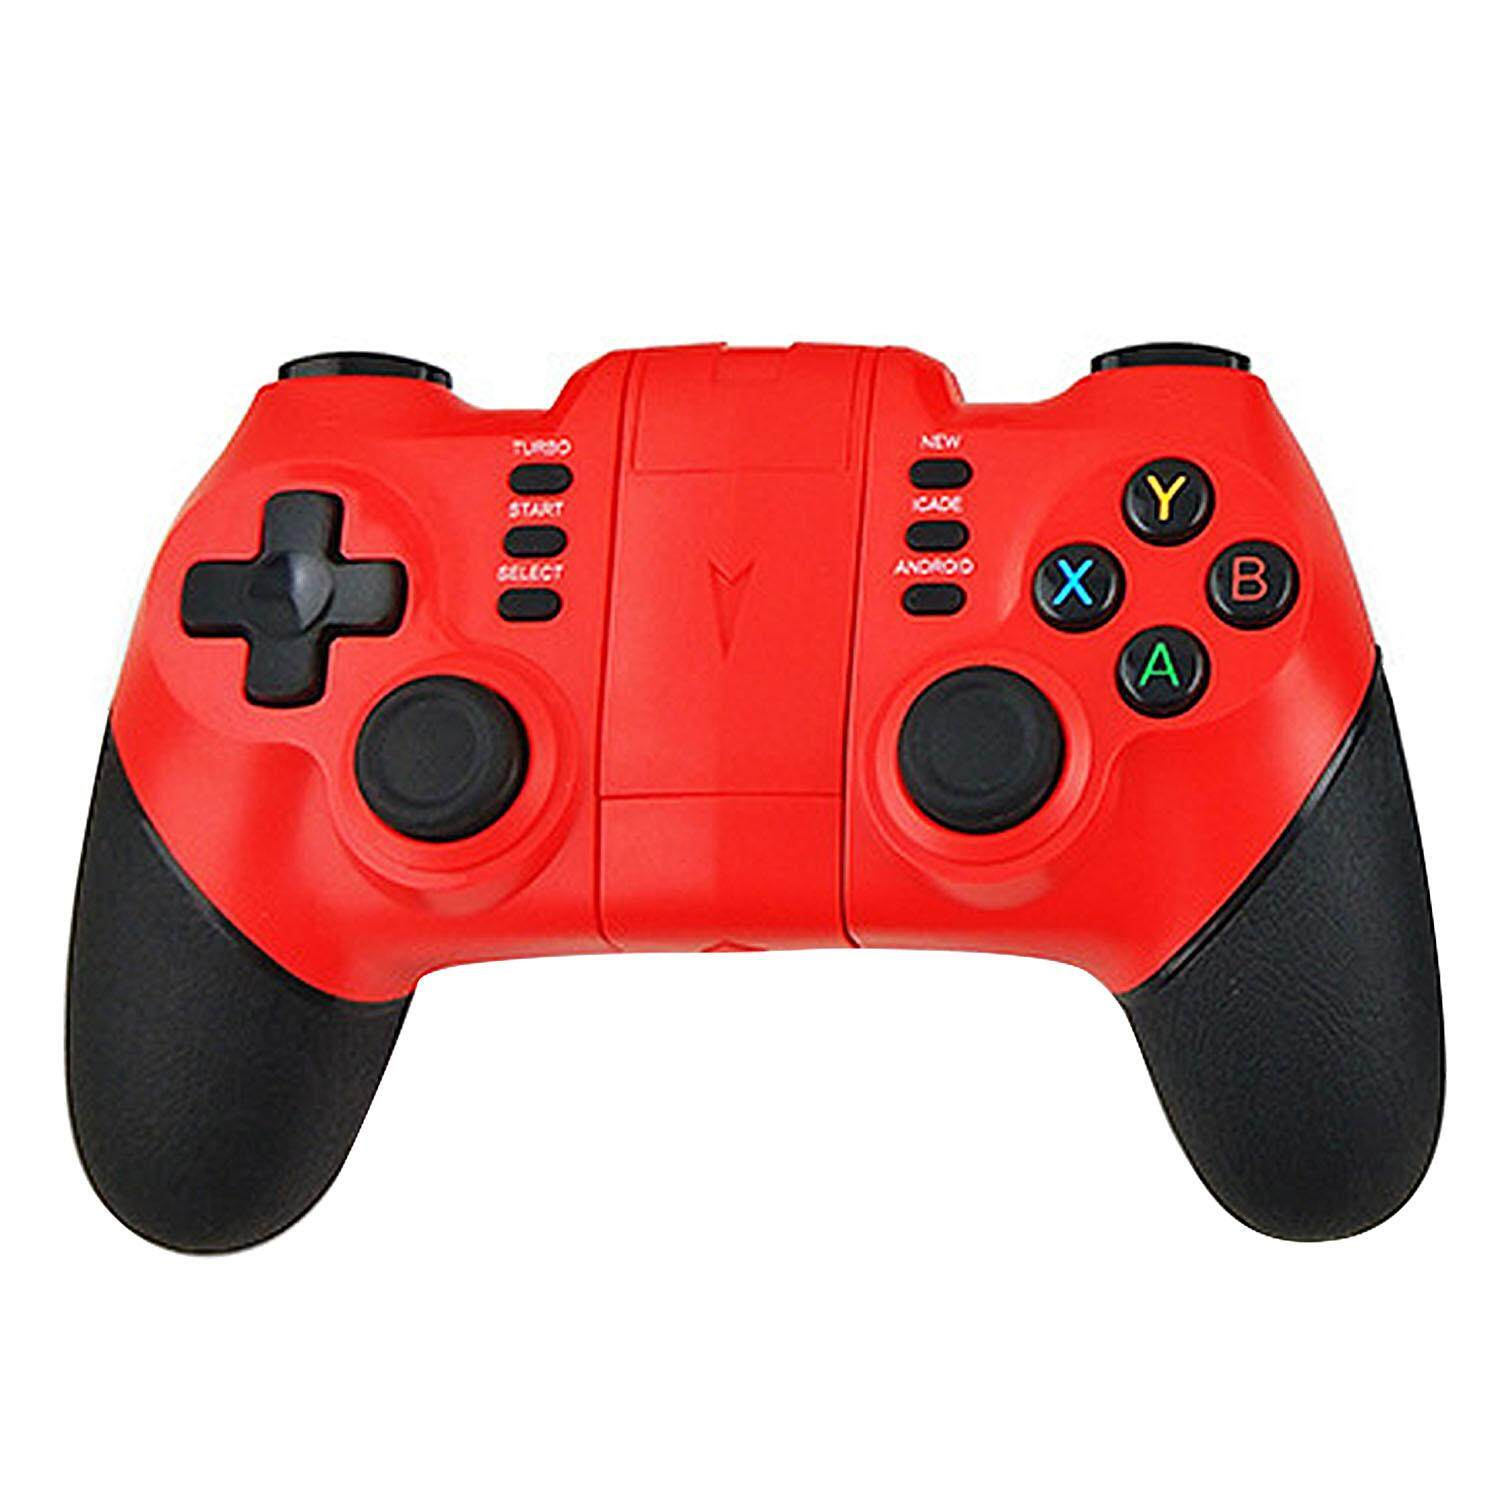 Wireless Bluetooth Gaming Controller Gamepad Joystick With Turbo Function Compatible With Android Ios Iphone Huawei Samsung Xiaomi Red By Stoneky.